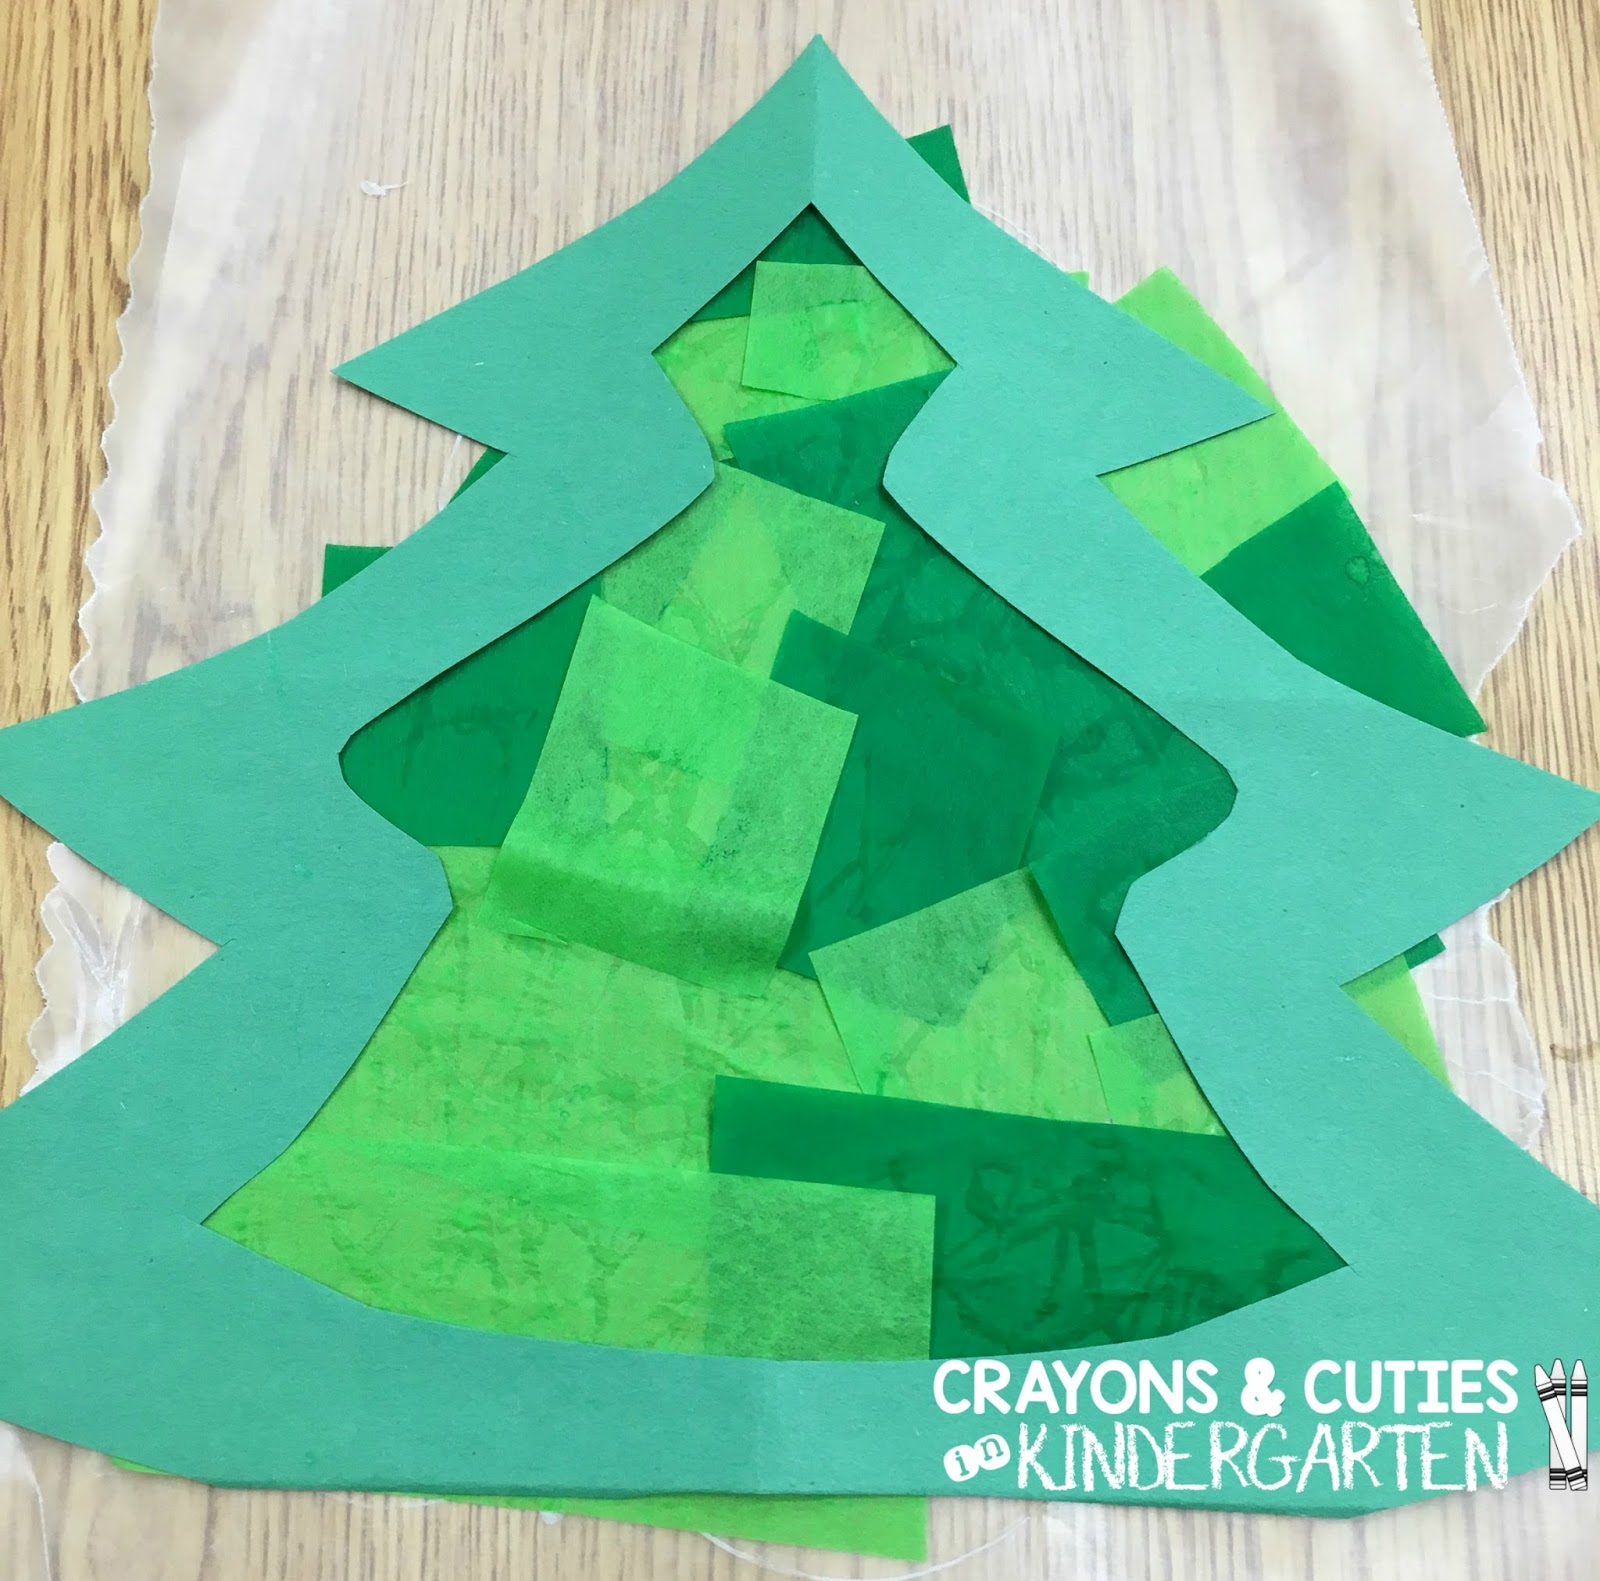 Crayons & Cuties In Kindergarten: Christmas Tree Stained Glass Craft